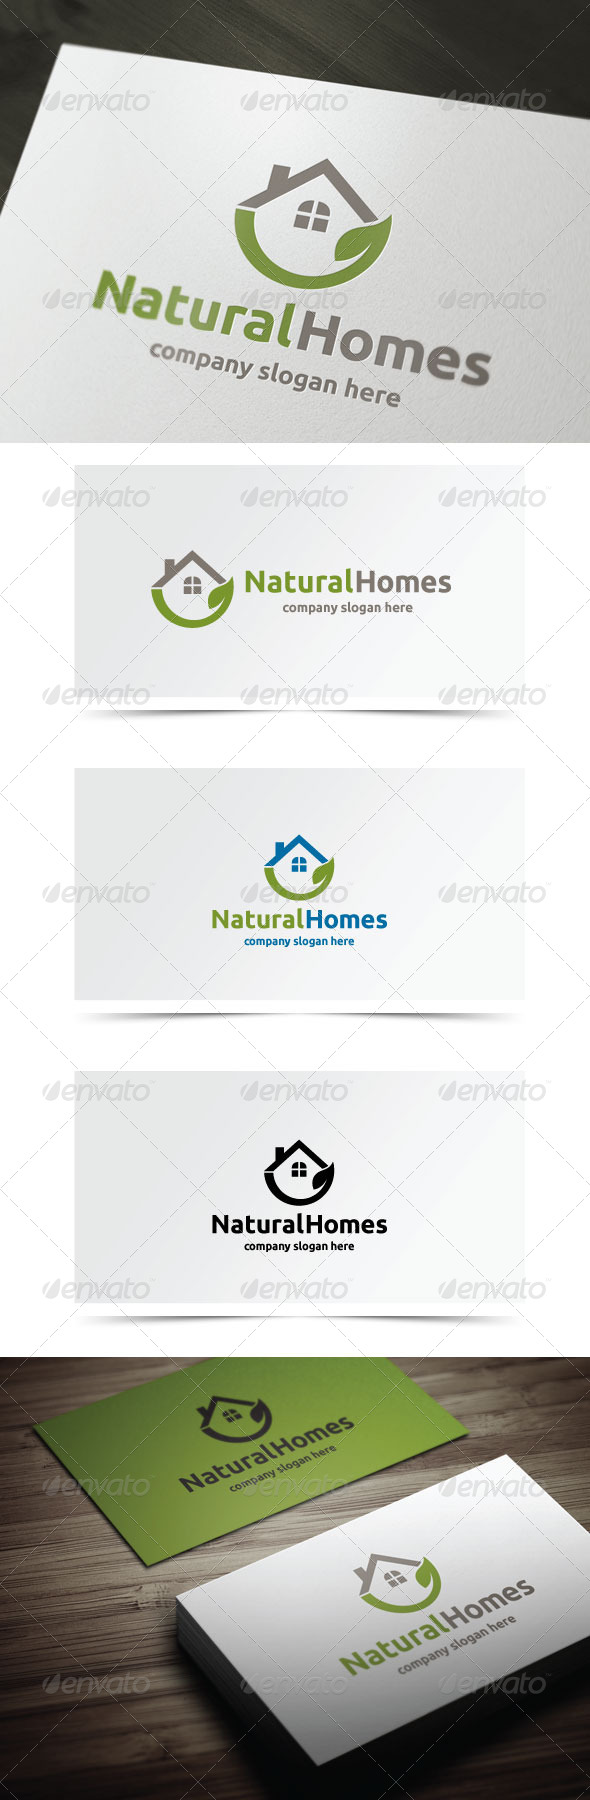 GraphicRiver Natural Homes 6280950